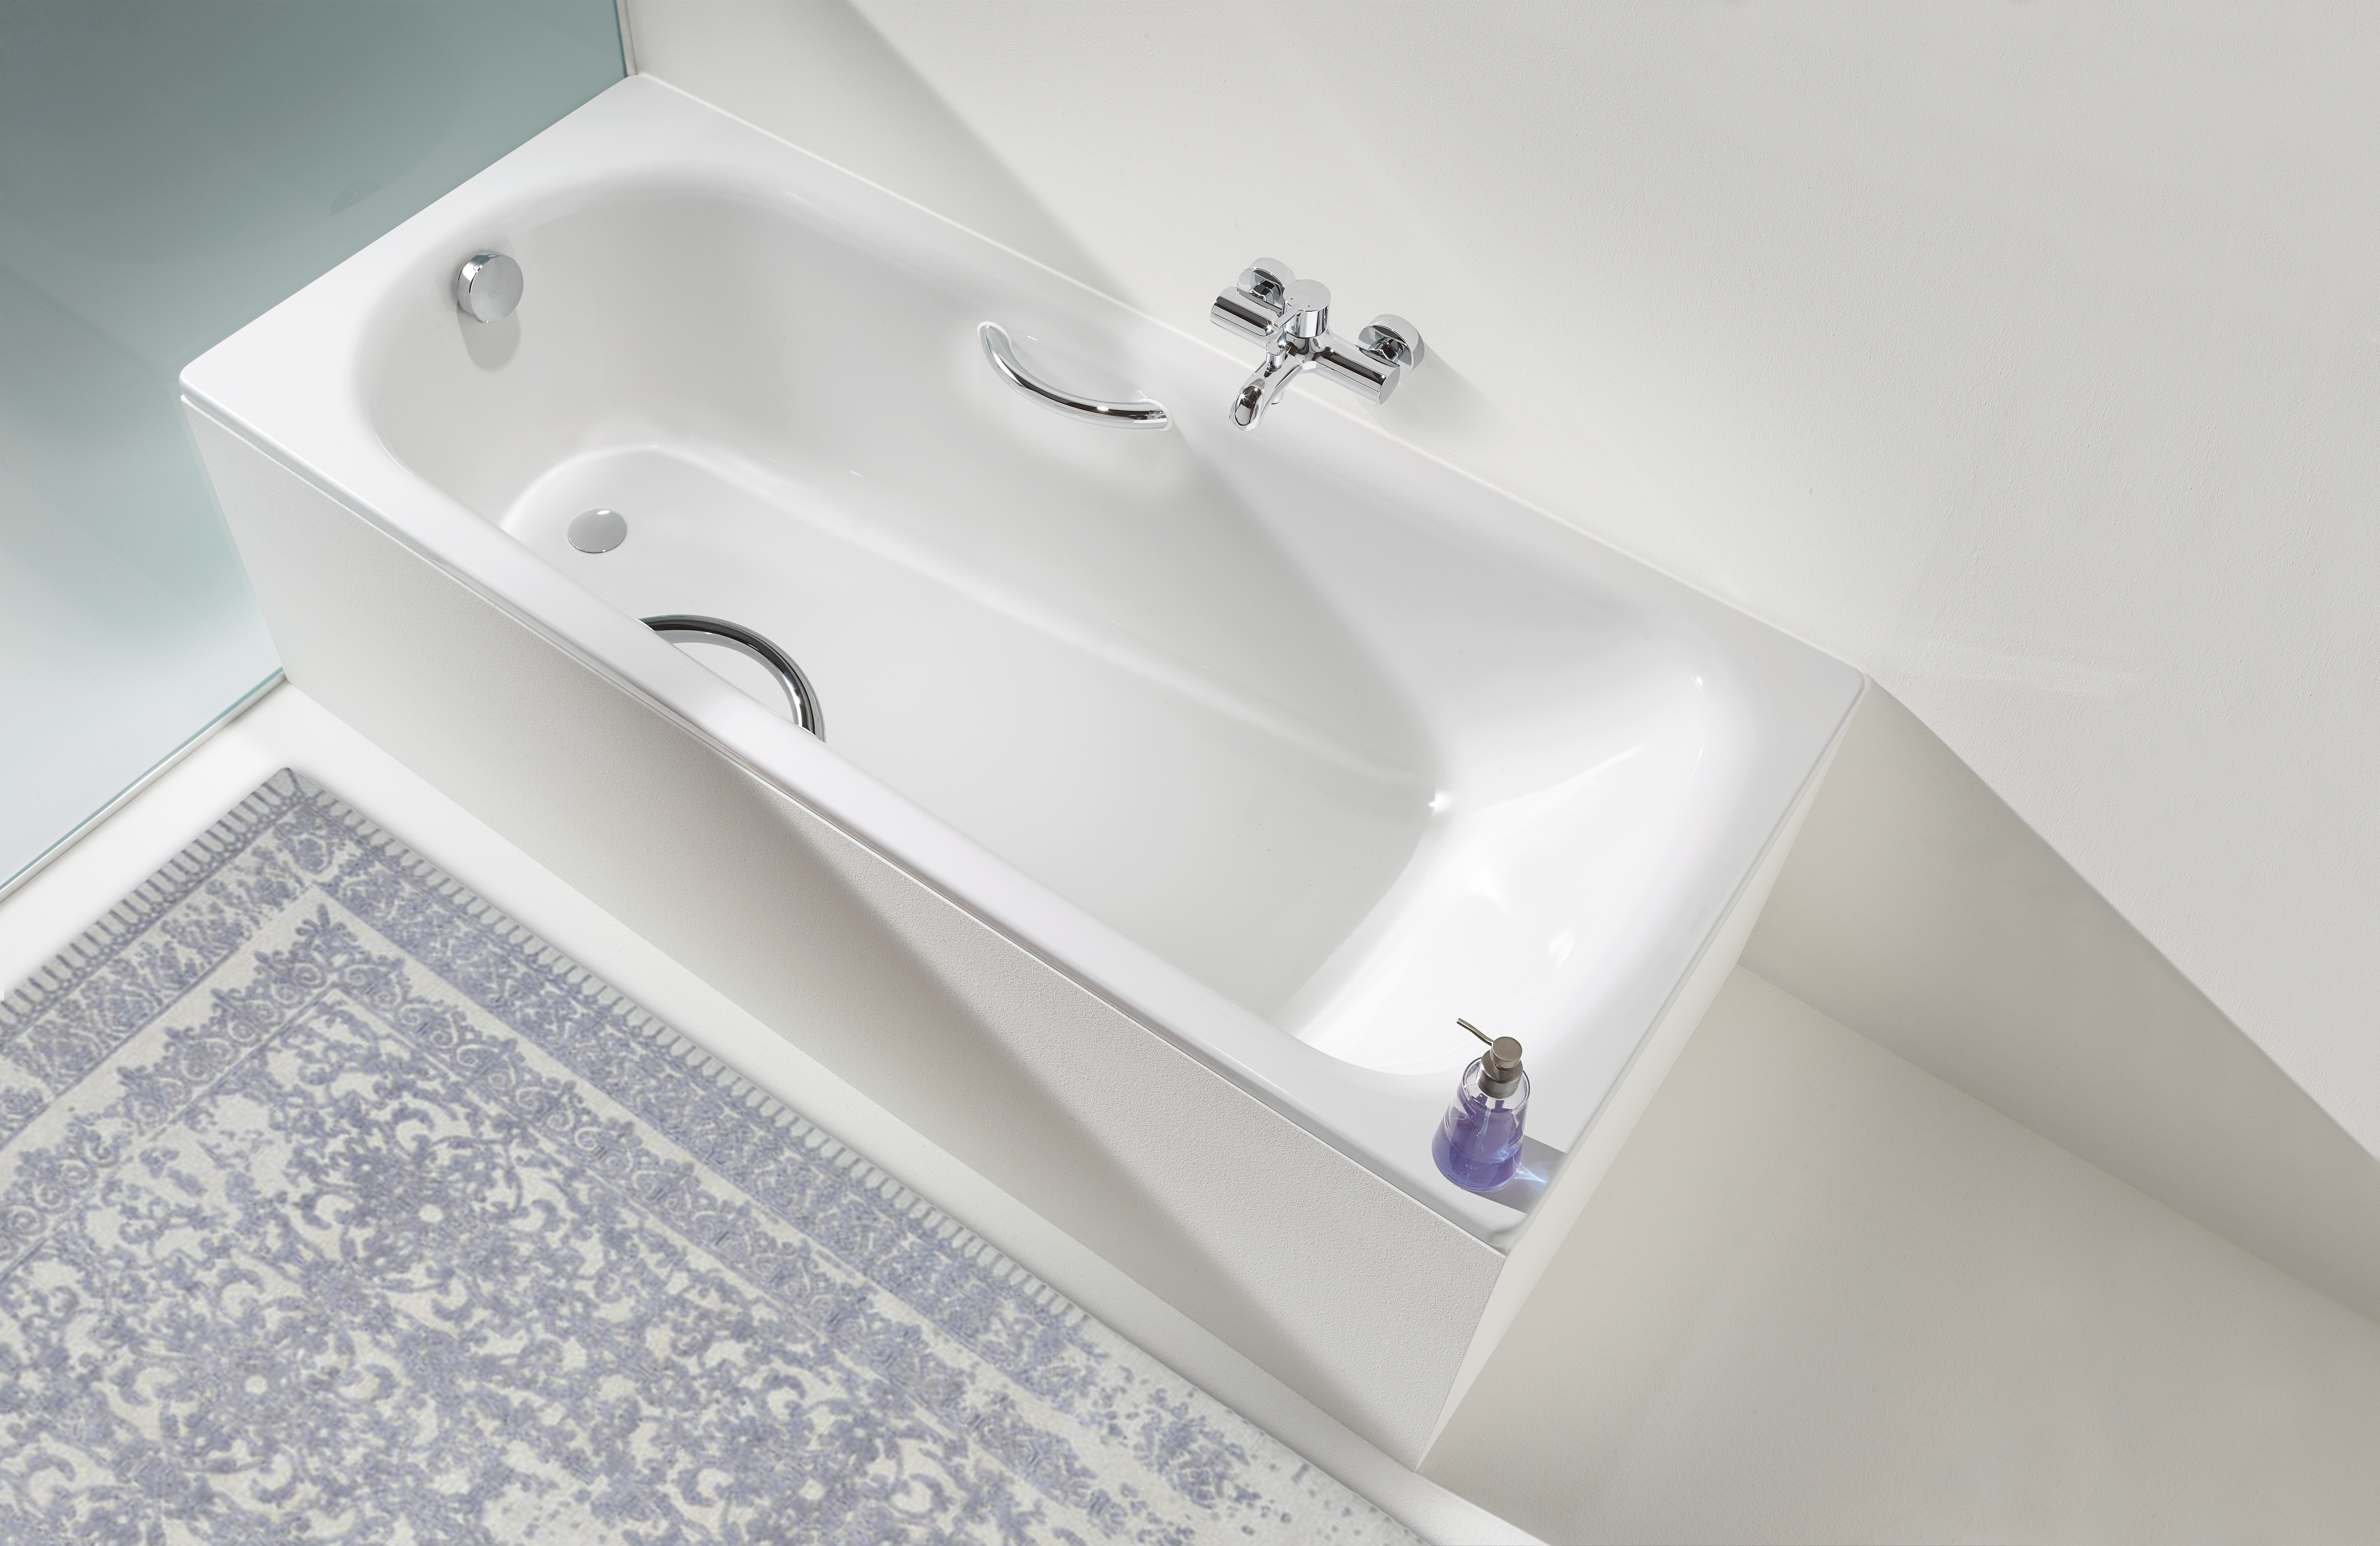 bathtub bath extractor family drains accessories index ace shower l hardware grips tub drain jsp